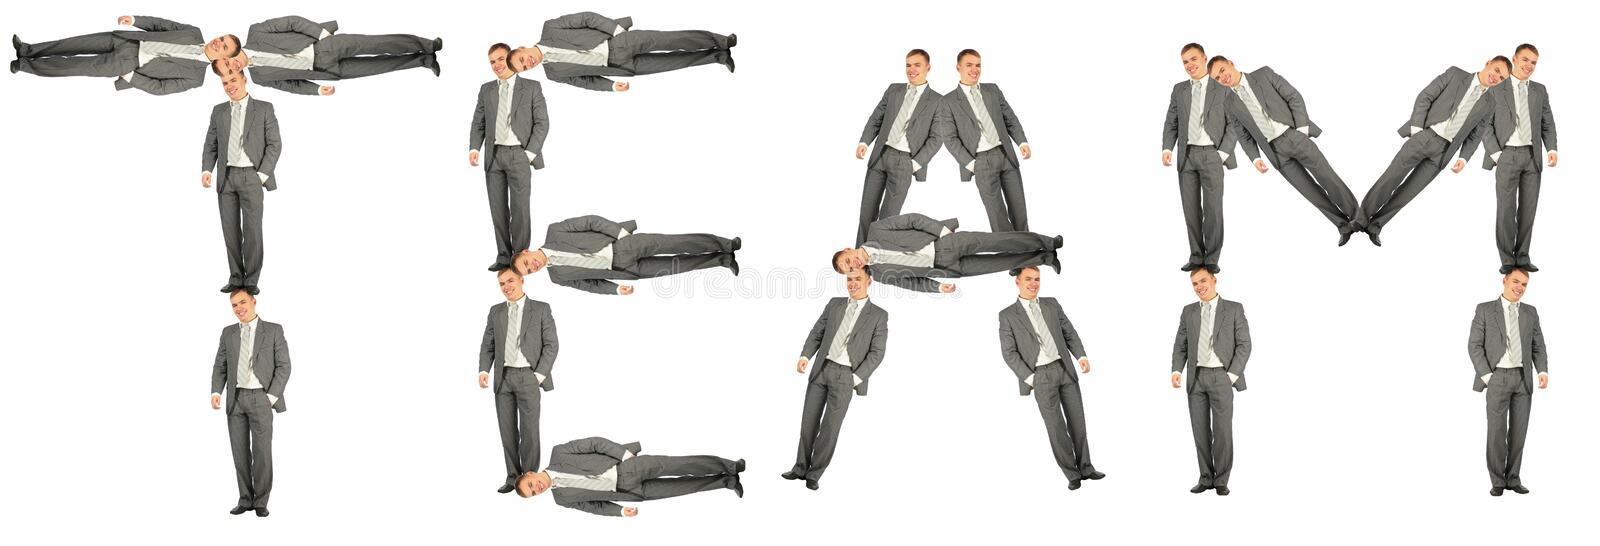 Business team word collage royalty free stock photo